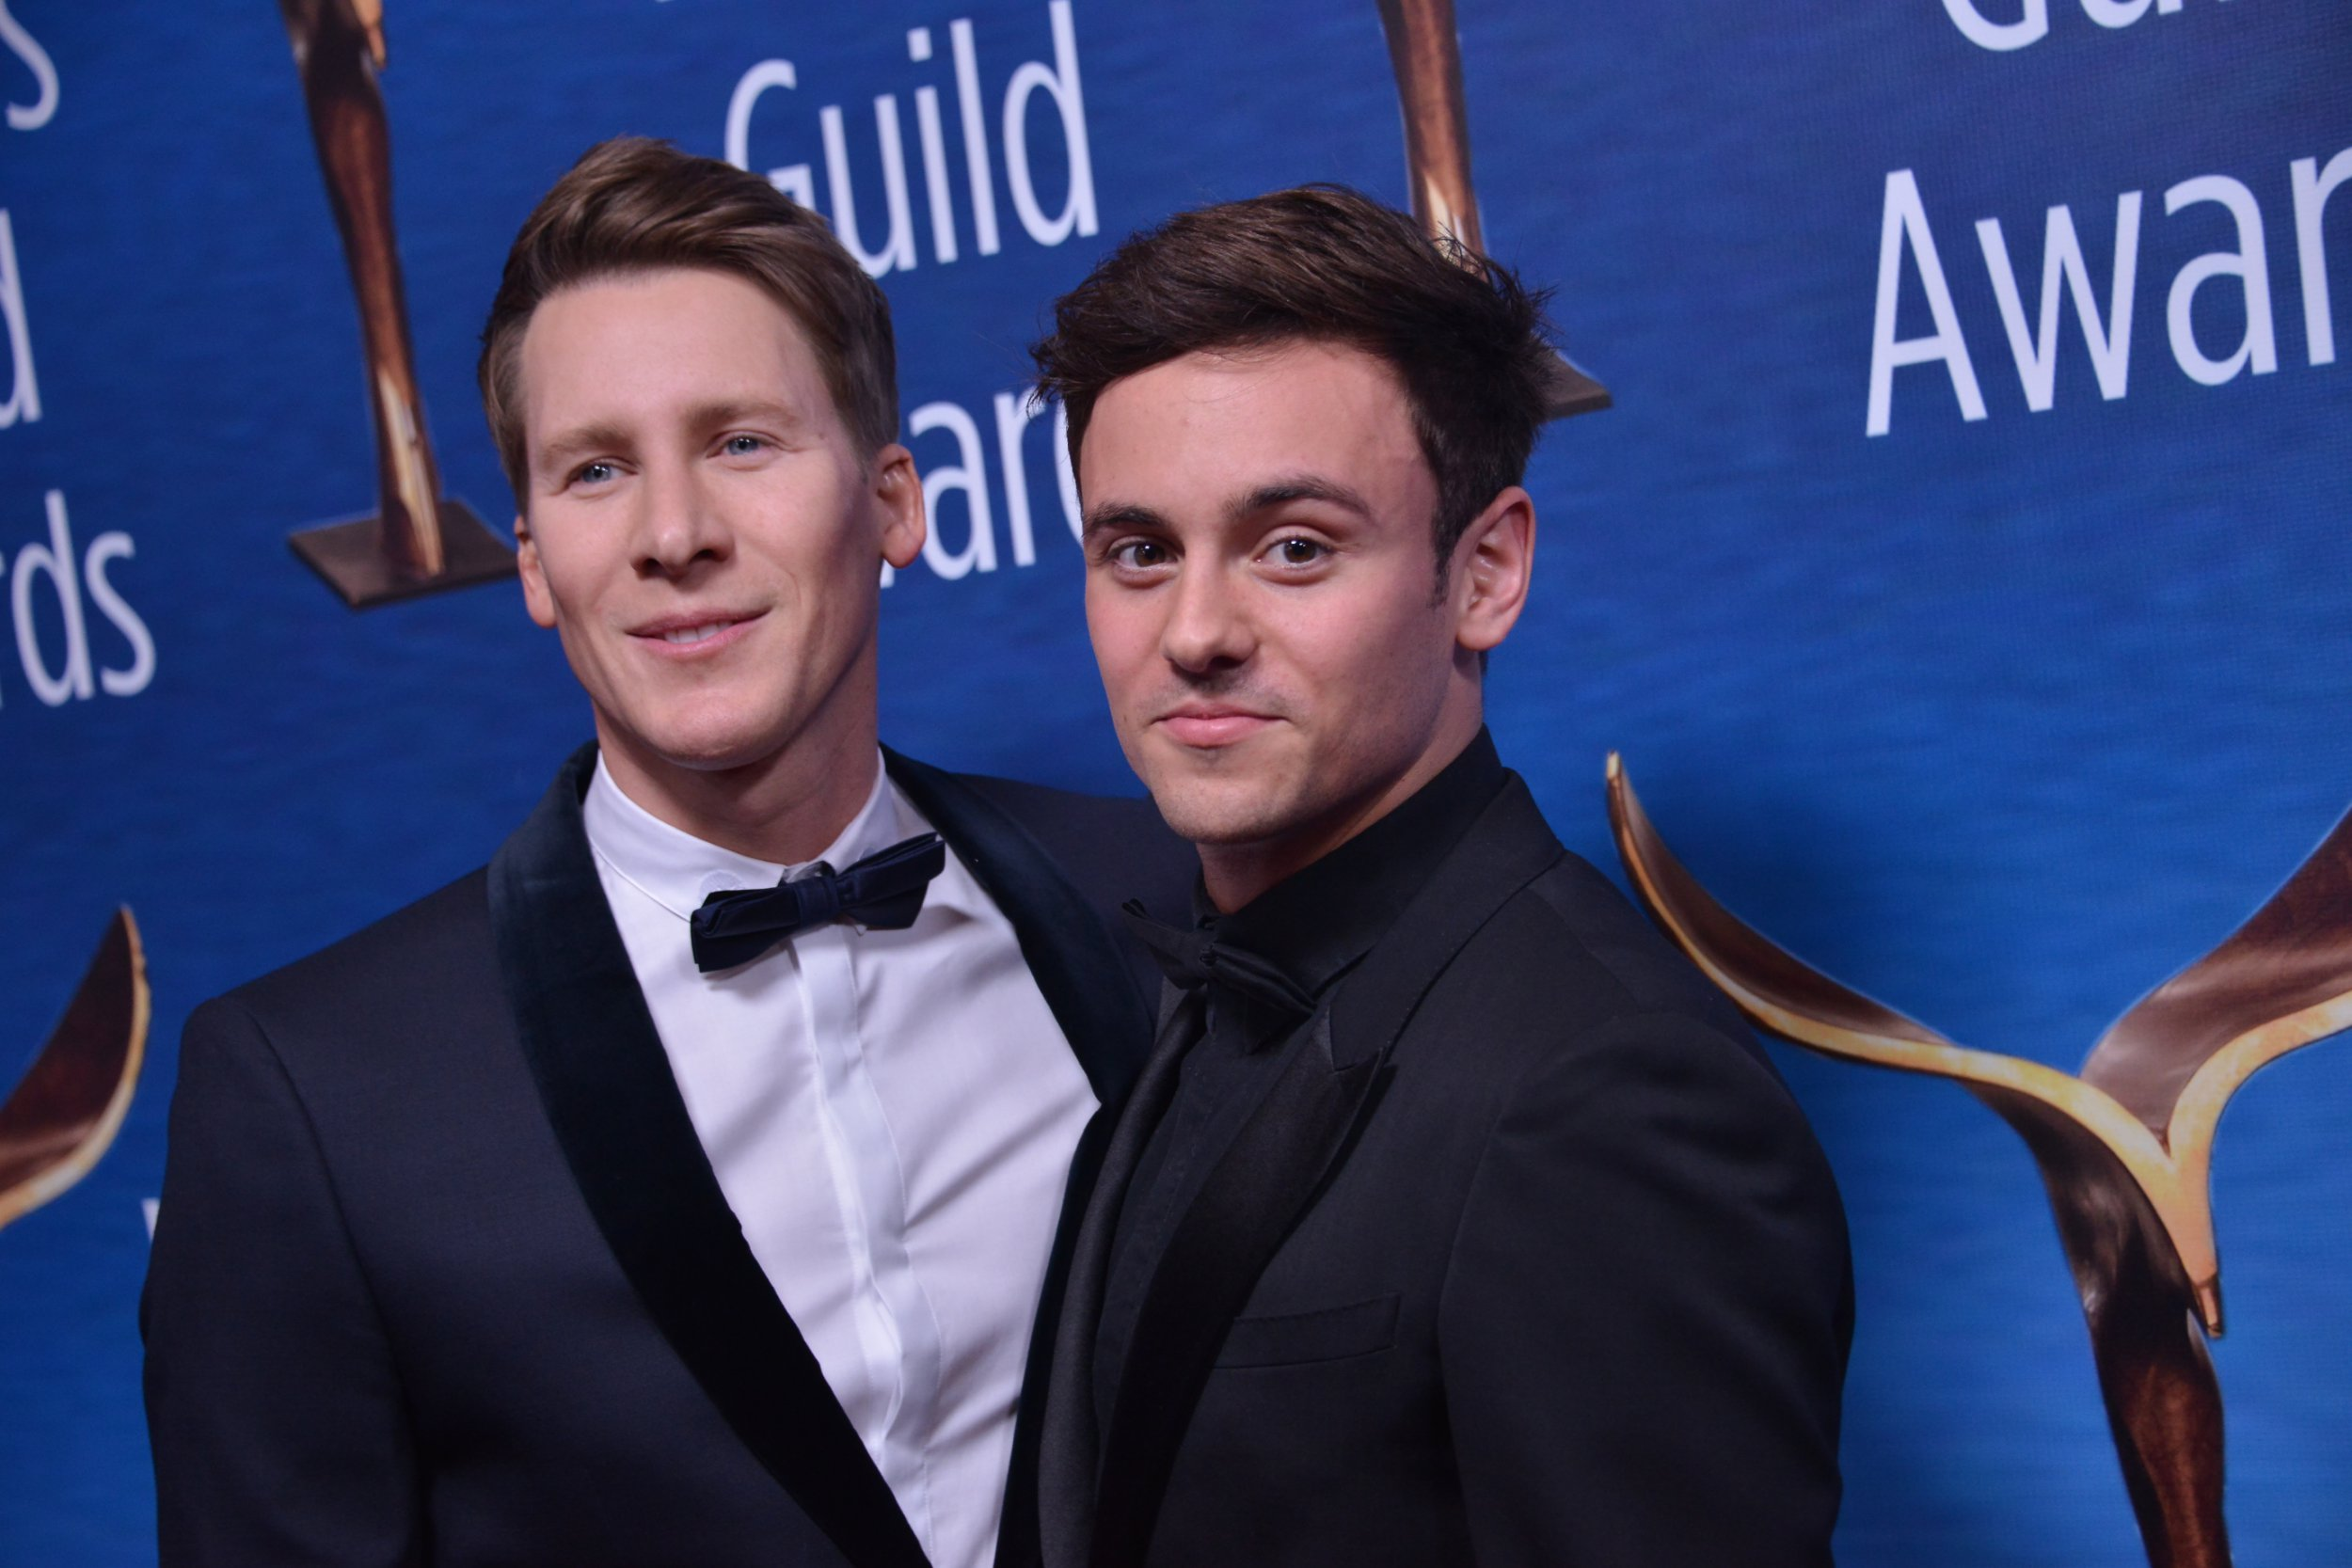 Tom Daley's husband shuts down argument suggesting 'two blokes can't raise a baby'